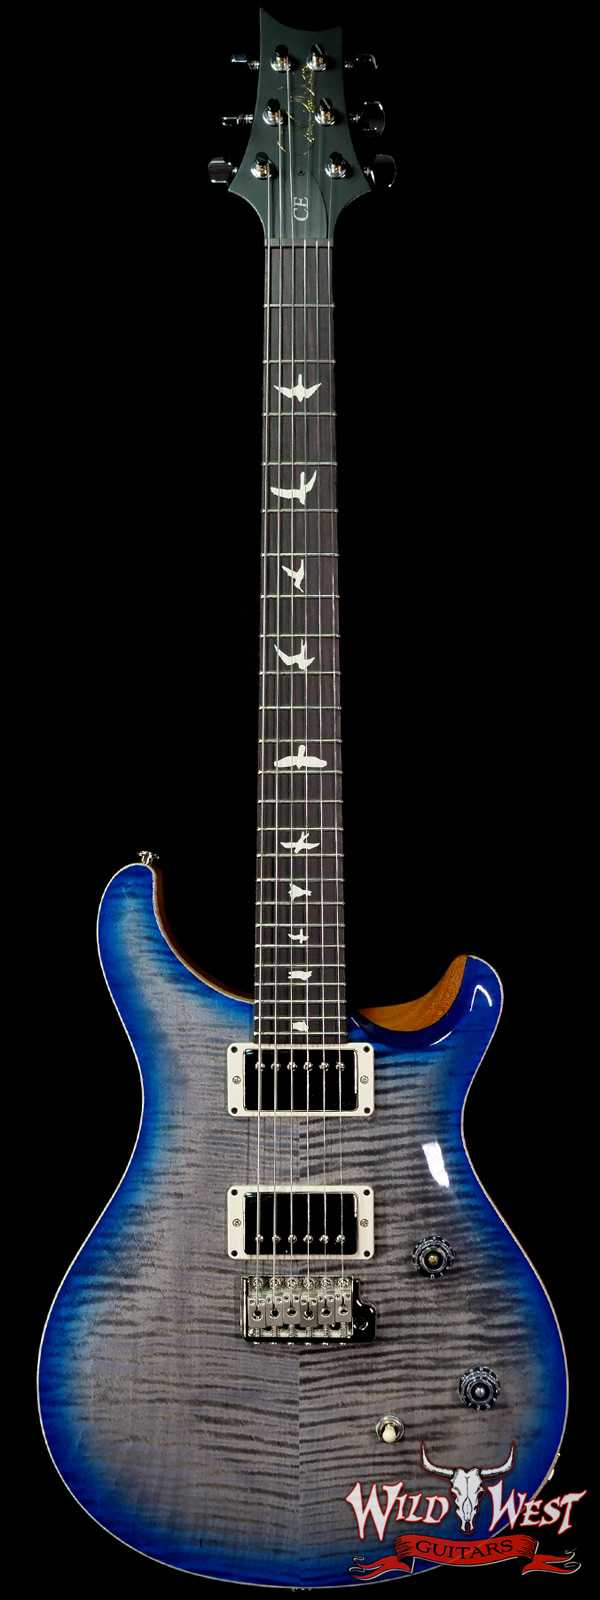 PRS Wild West Guitars Special Run Flame Top Black Neck CE 24 Faded Grey Black Blue Burst (Blemish)